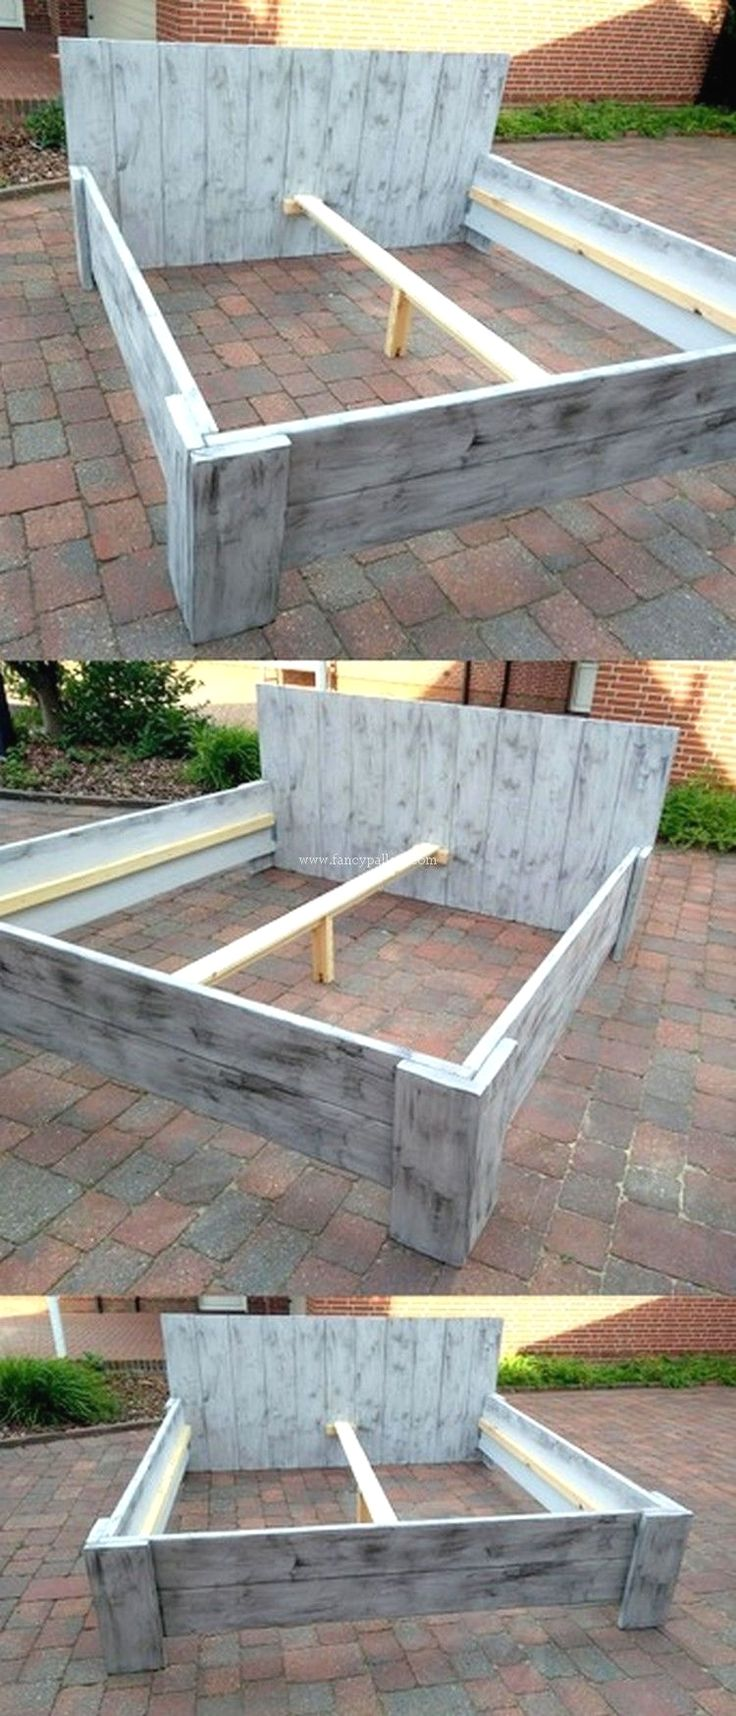 Pin by Hope Zeh on Diy in 2020 Pallet bed frames, Wood